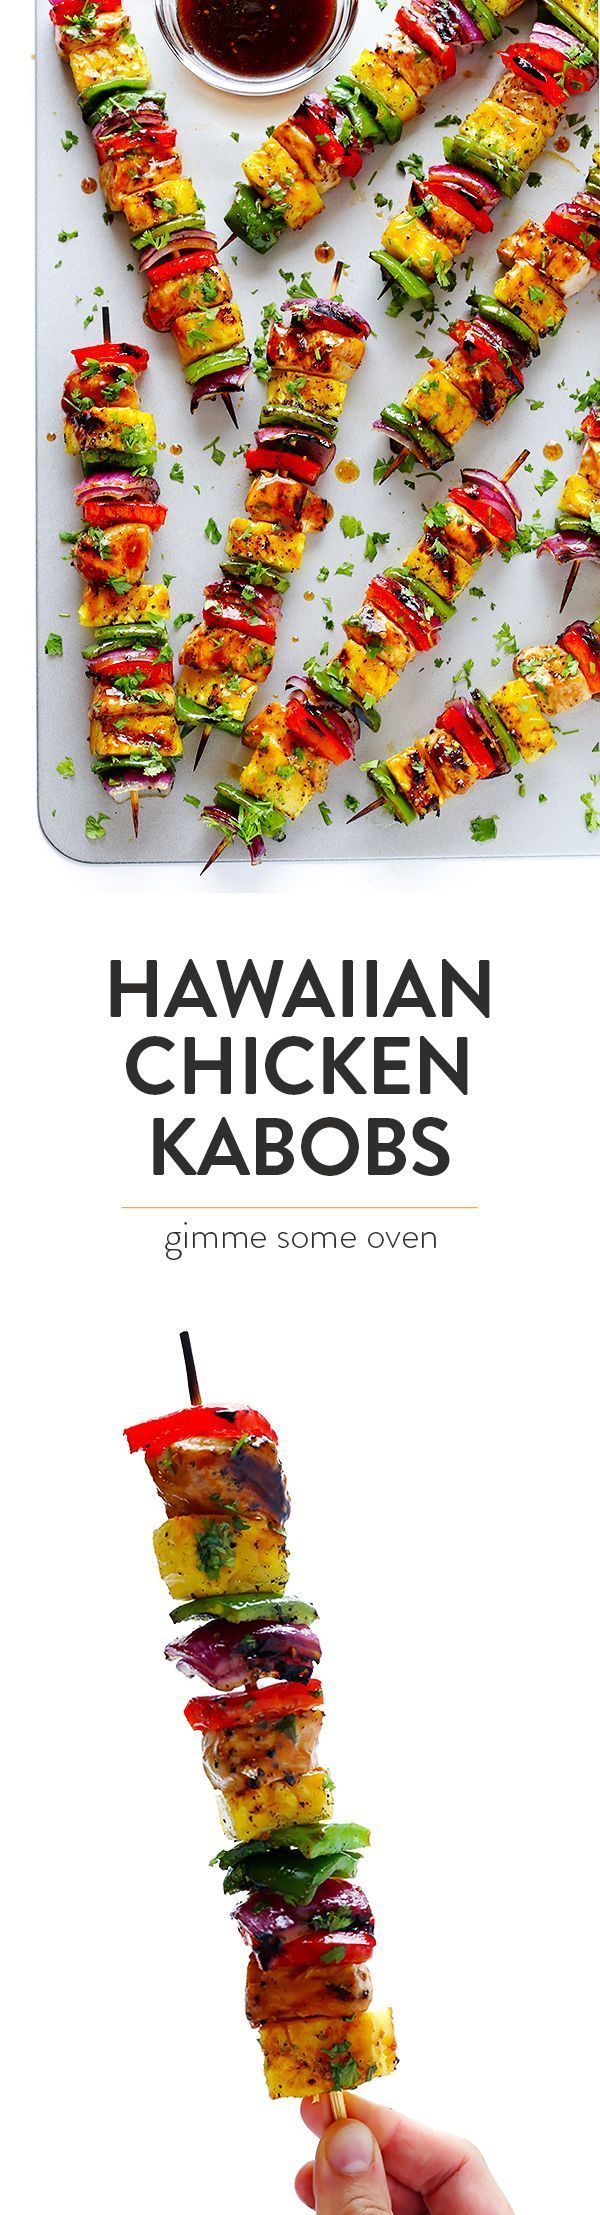 These Rainbow Hawaiian Chicken Kabobs are marinated and basted in a tasty teriyaki sauce, then grilled to perfection and sprinkled with cilantro. So delicious!   gimmesomeoven.com